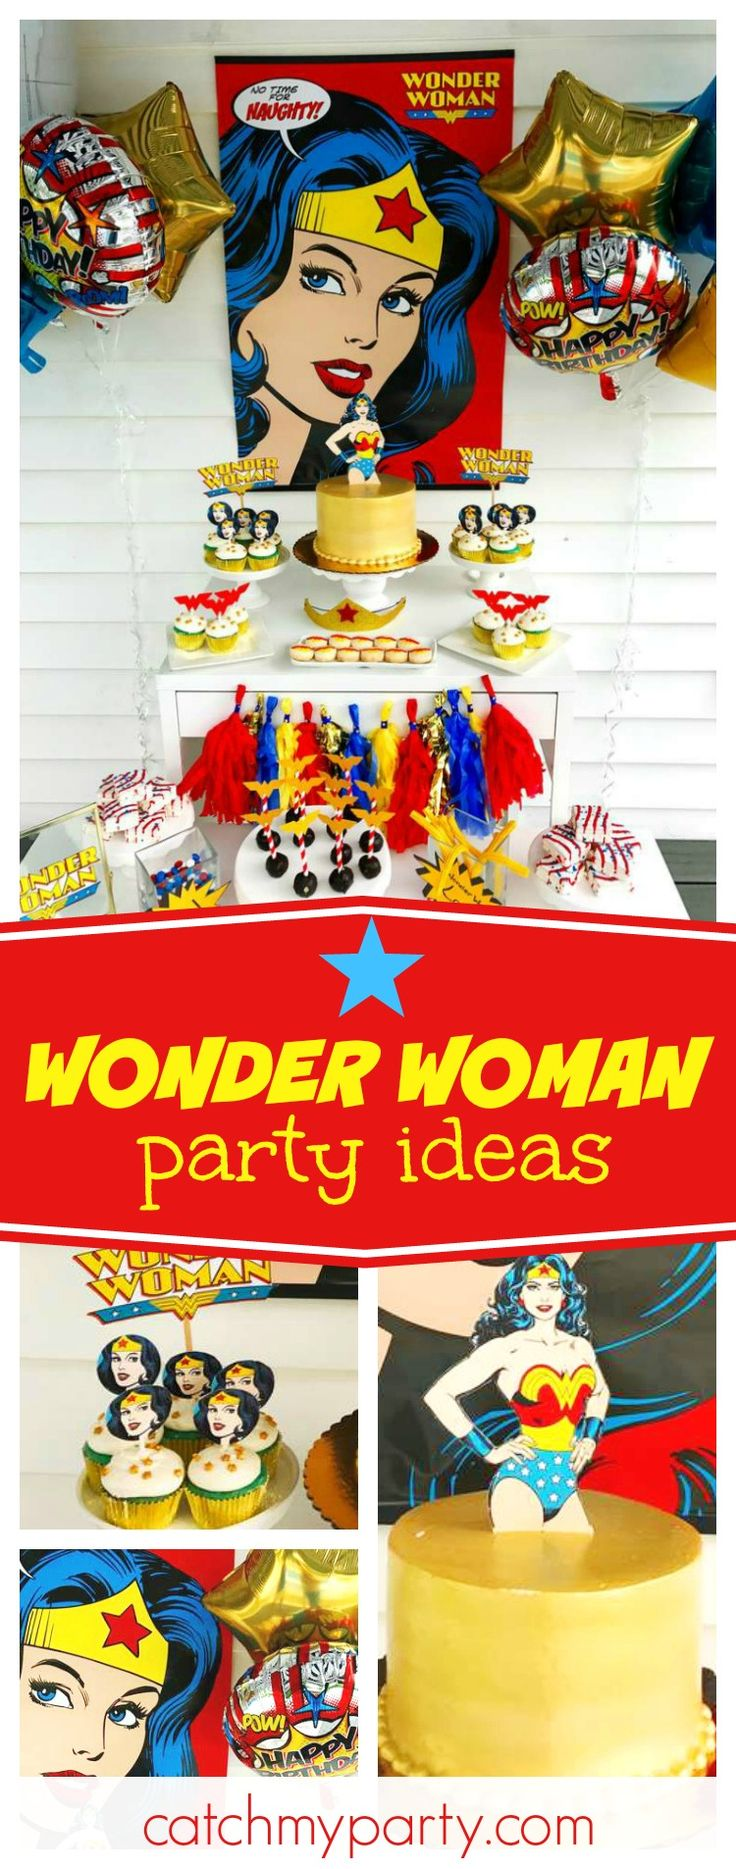 Take a look at this amazing Wonder Woman birthday party!! The dessert table and backdrop are incredible!! See more party ideas and share yours at CatchMyParty.com